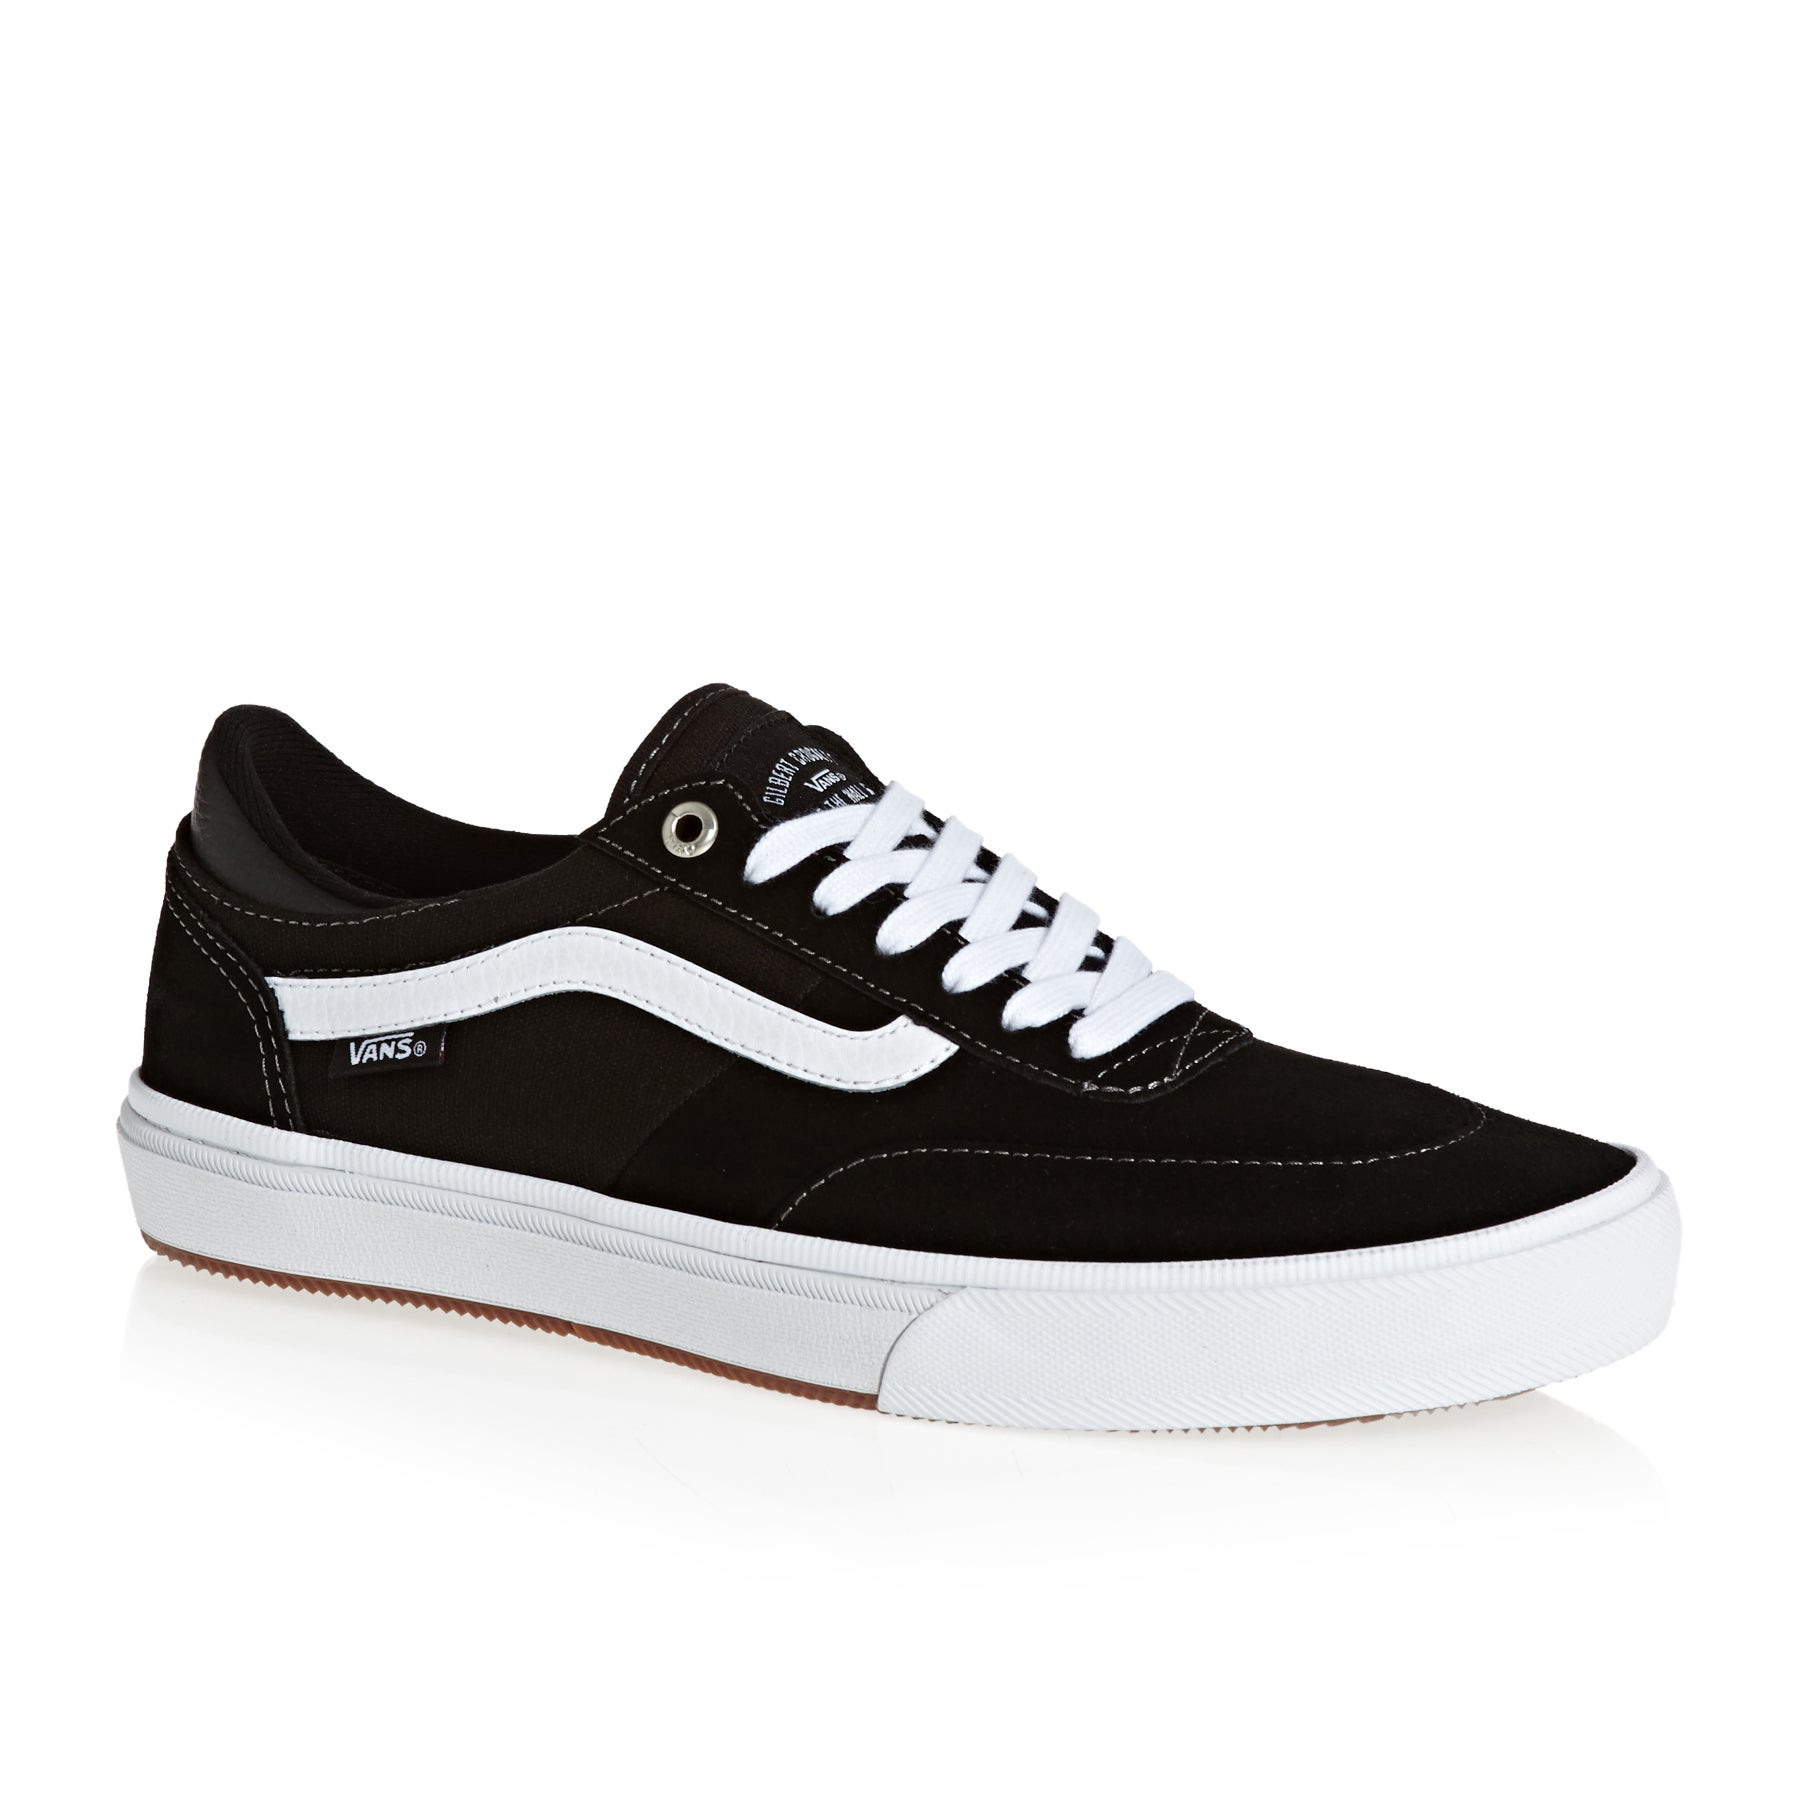 2 Disponibile Surfdome Crockett Su Gilbert Pro Vans Scarpe ikZTOXPu